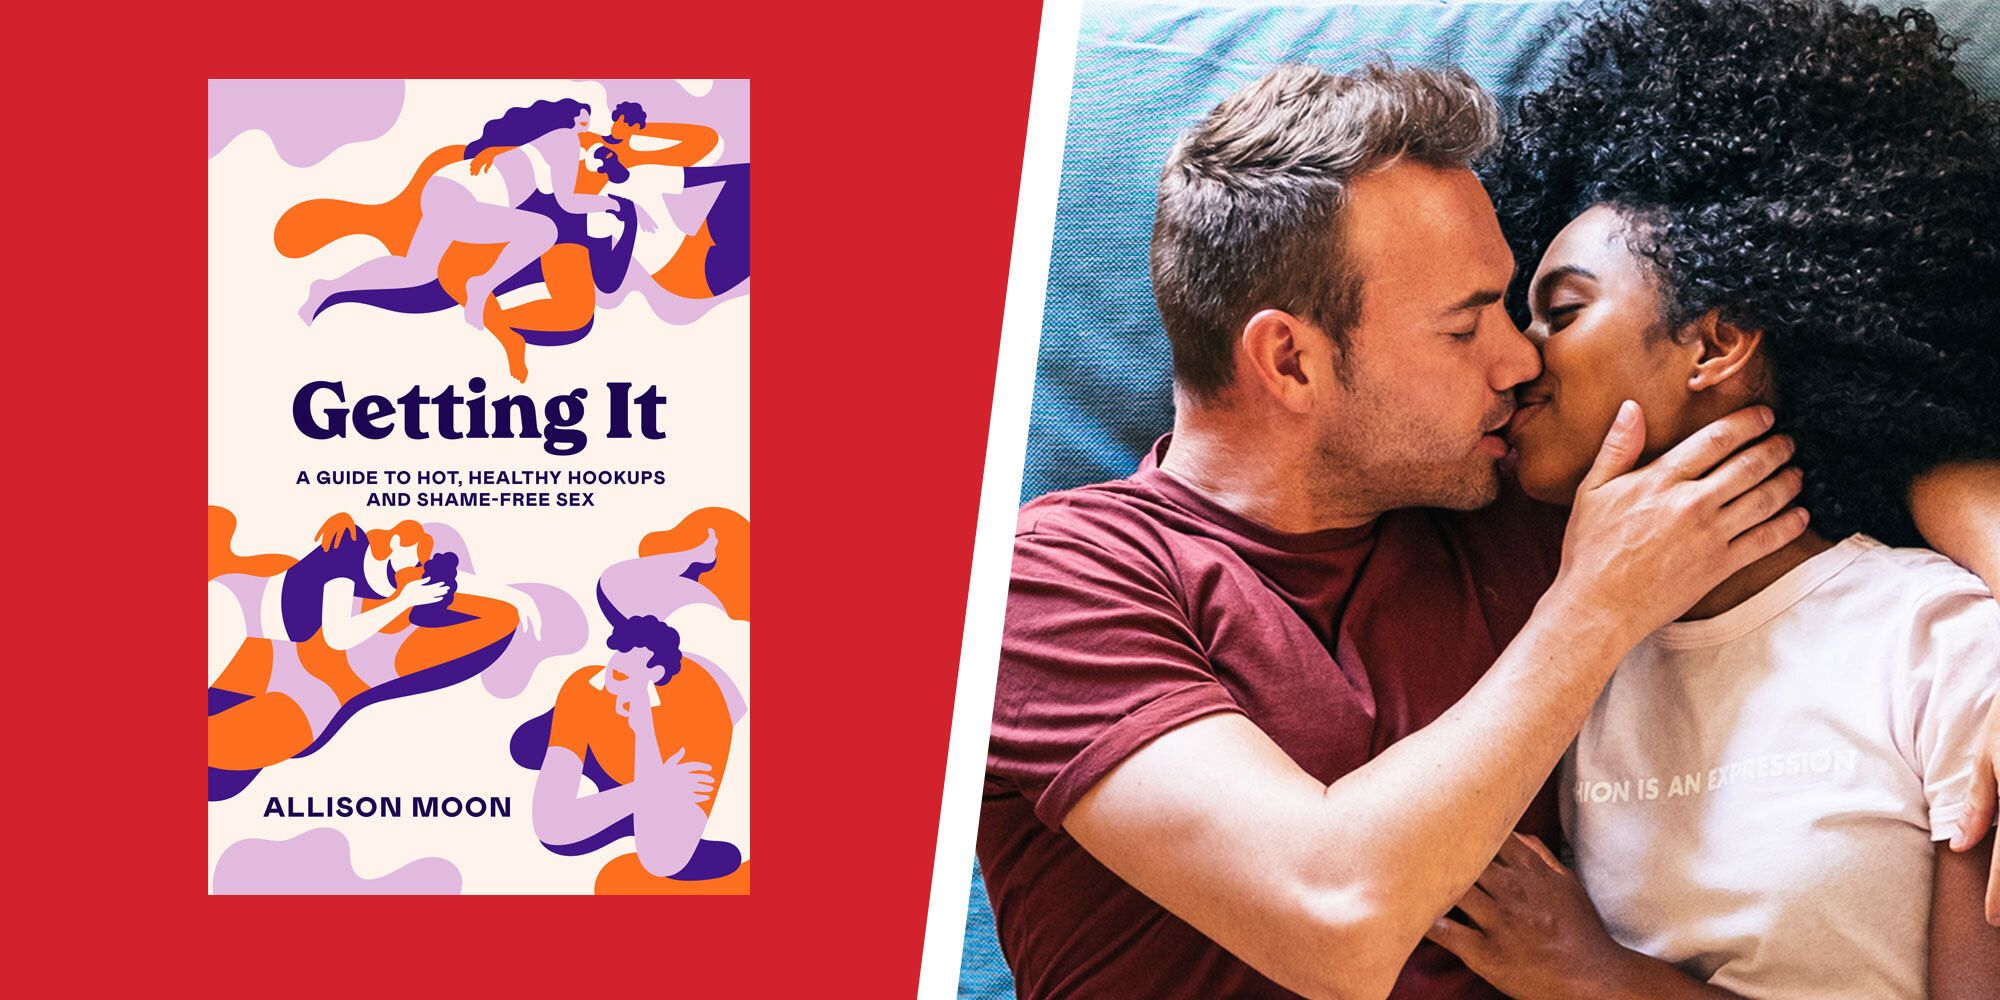 The 5 Rules of Booty Calls—and More From Getting It, a New Book About Hooking Up